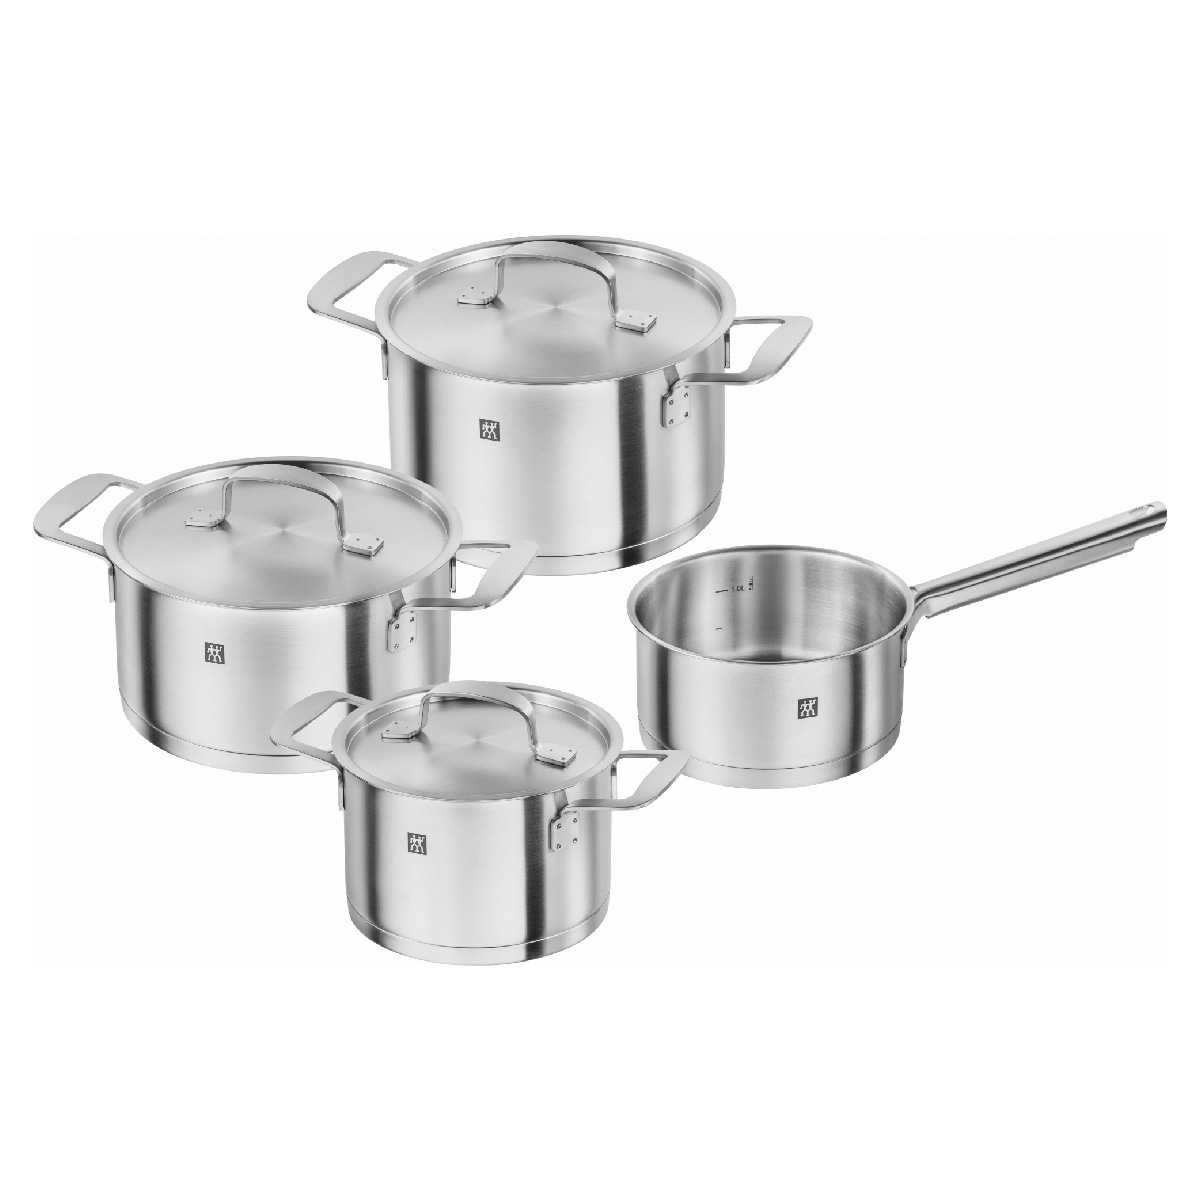 ZWILLING - Base cookware set - 4pcs